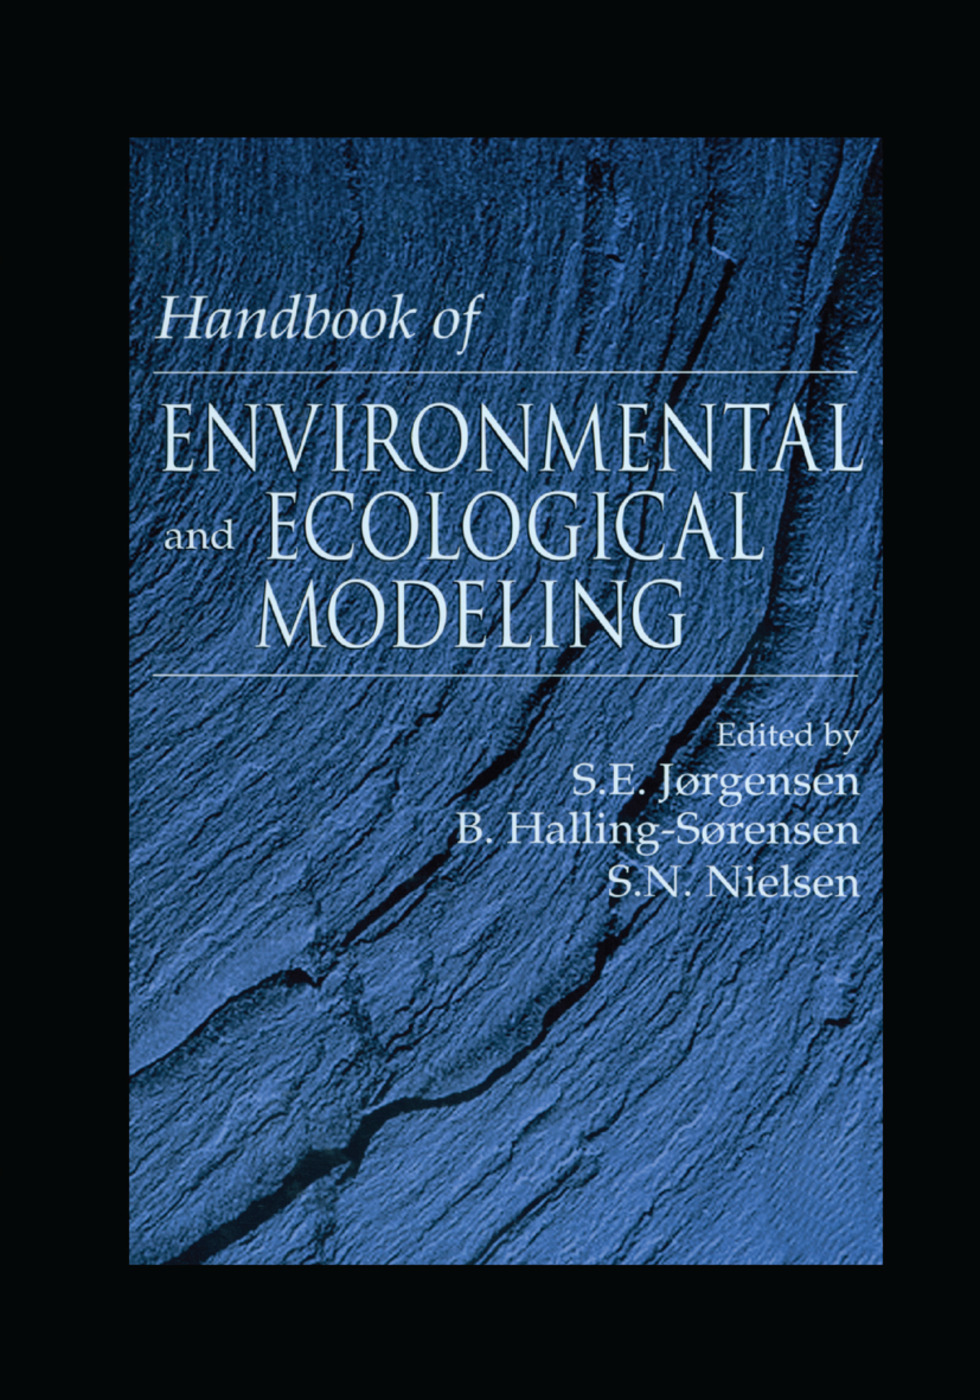 Handbook of Environmental and Ecological Modeling